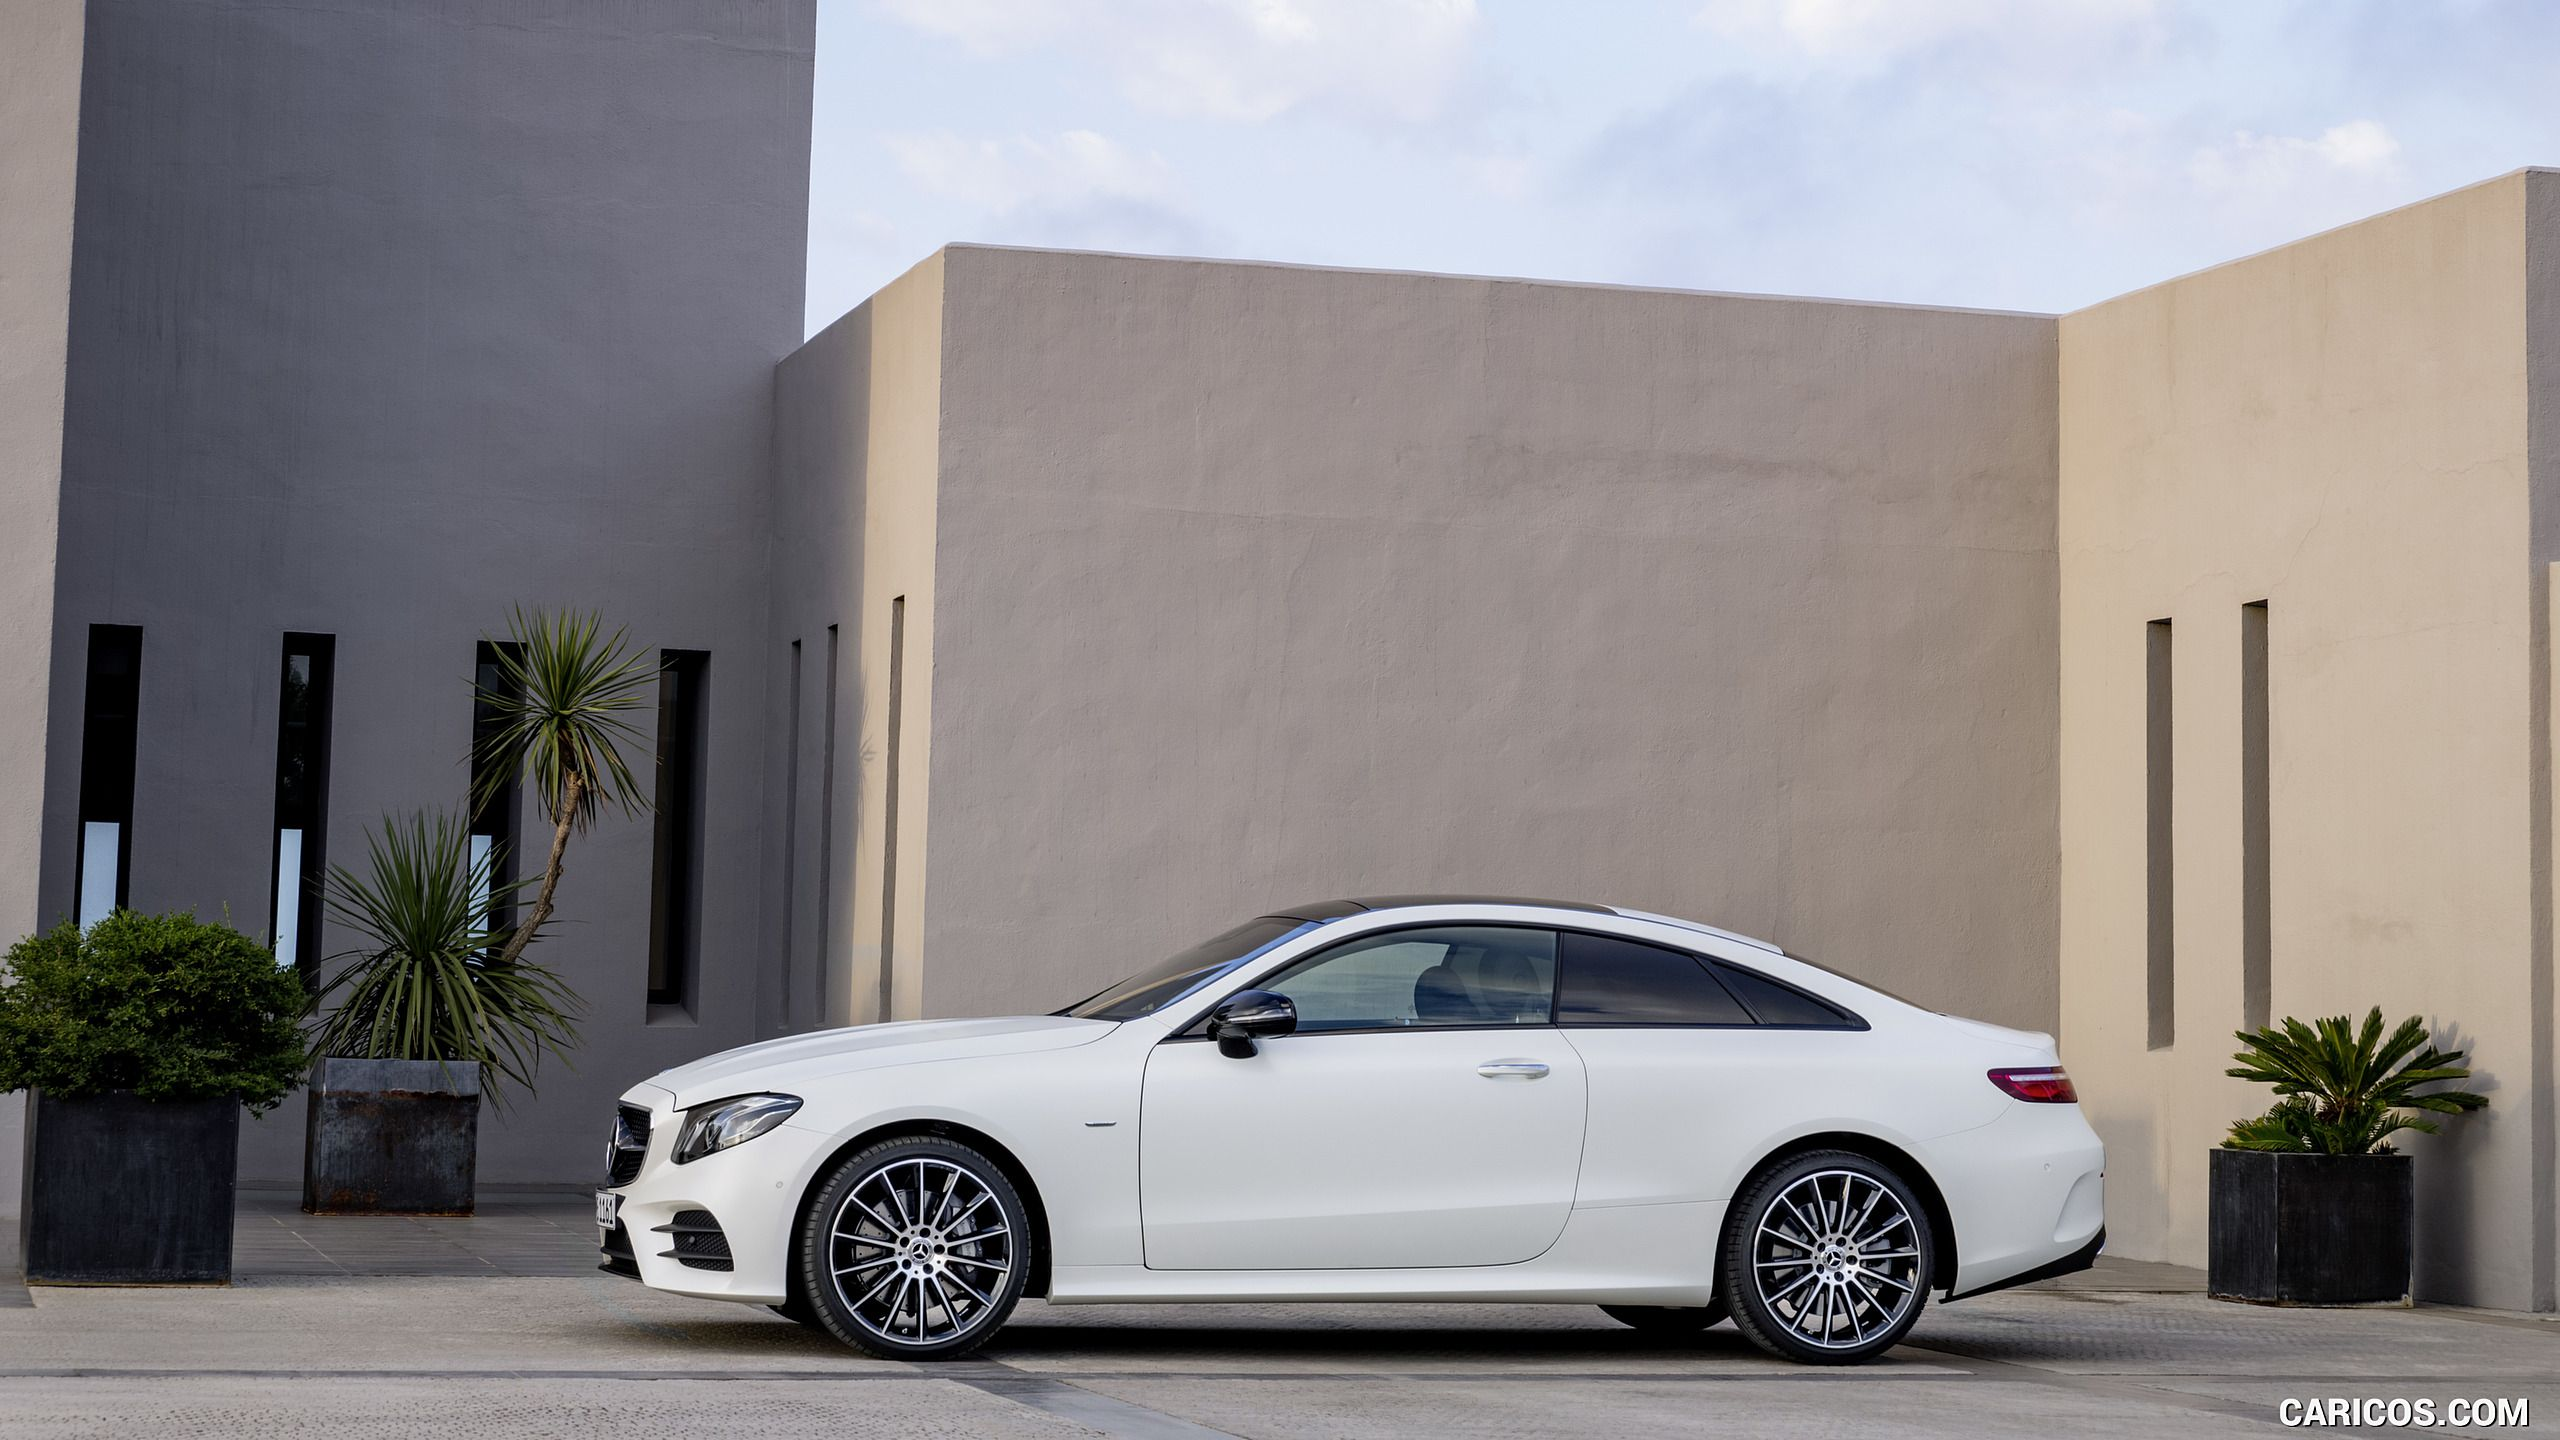 2018 Mercedes Benz E Class Coupe Edition 1 Amg Line Night Package Color Designo Kashmir White Magno Side Hd Mercedes Benz E Class Mercedes E Class Coupe